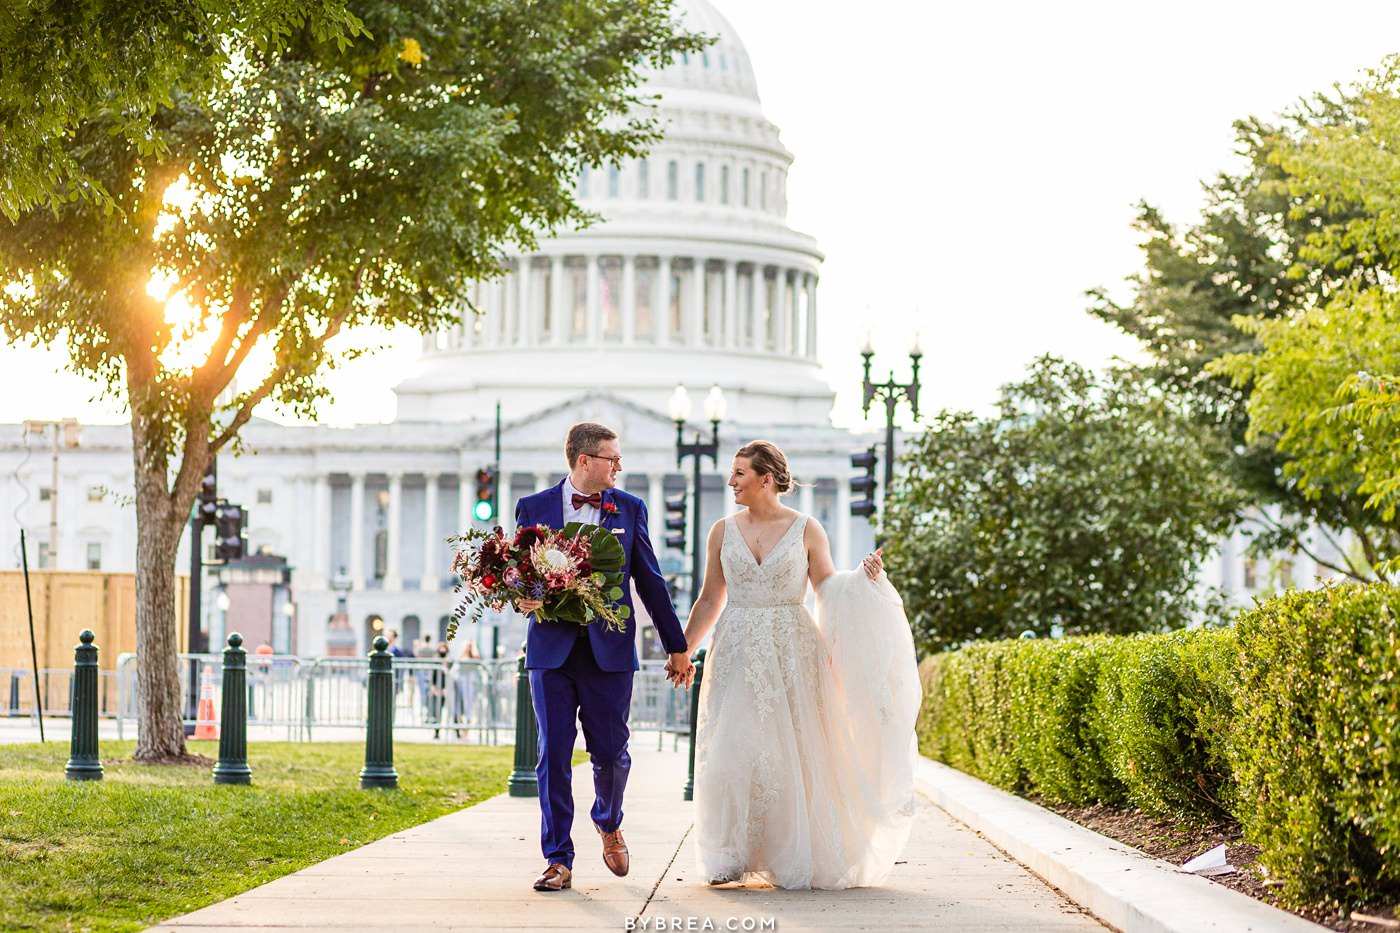 Bride and groom portrait in front of Capitol building in DC